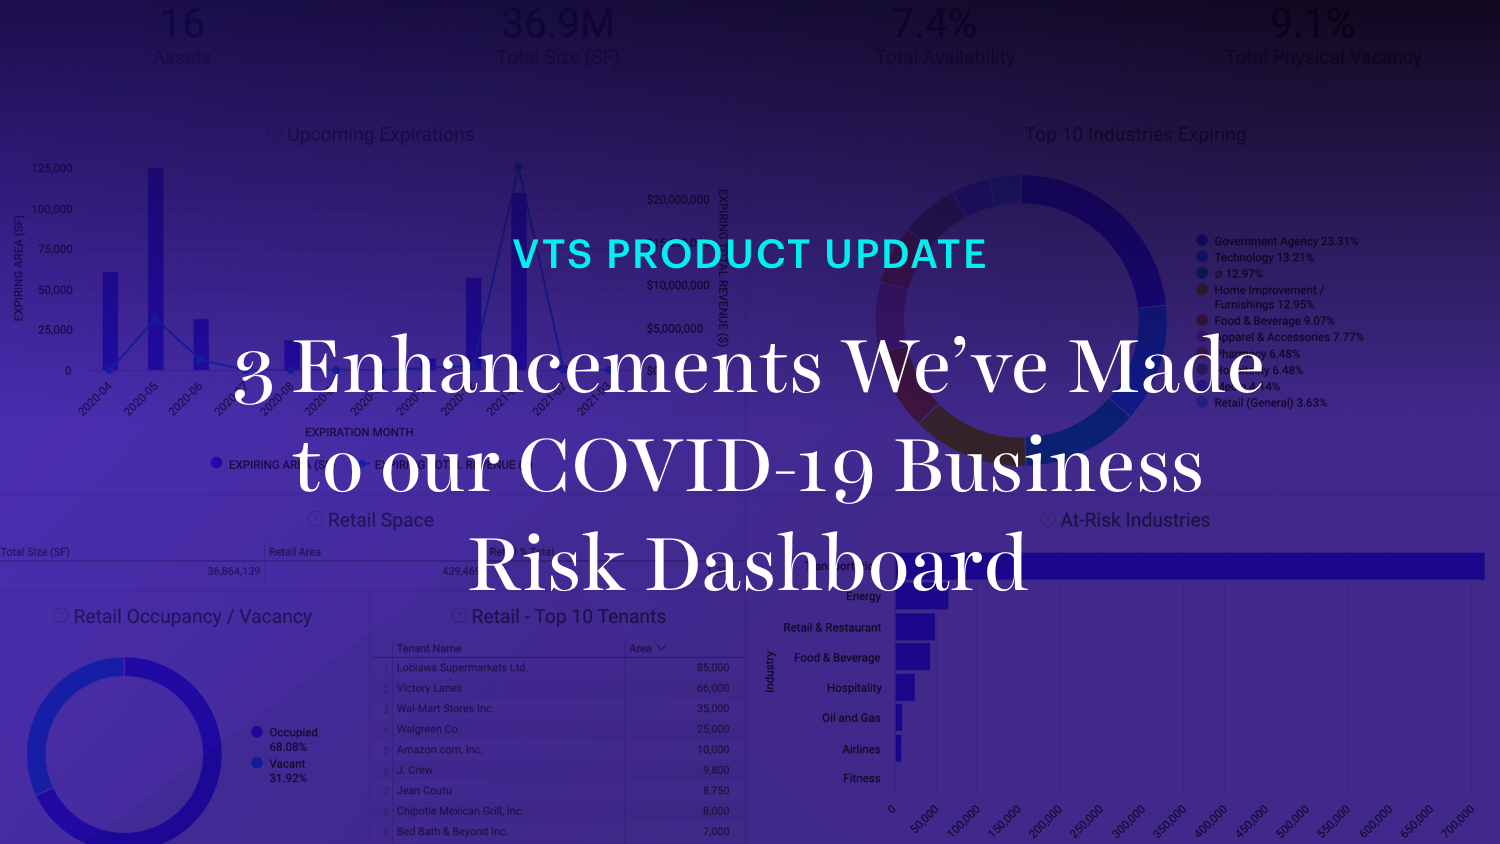 3 Enhancements We've Made to our COVID-19 Business Risk Dashboard